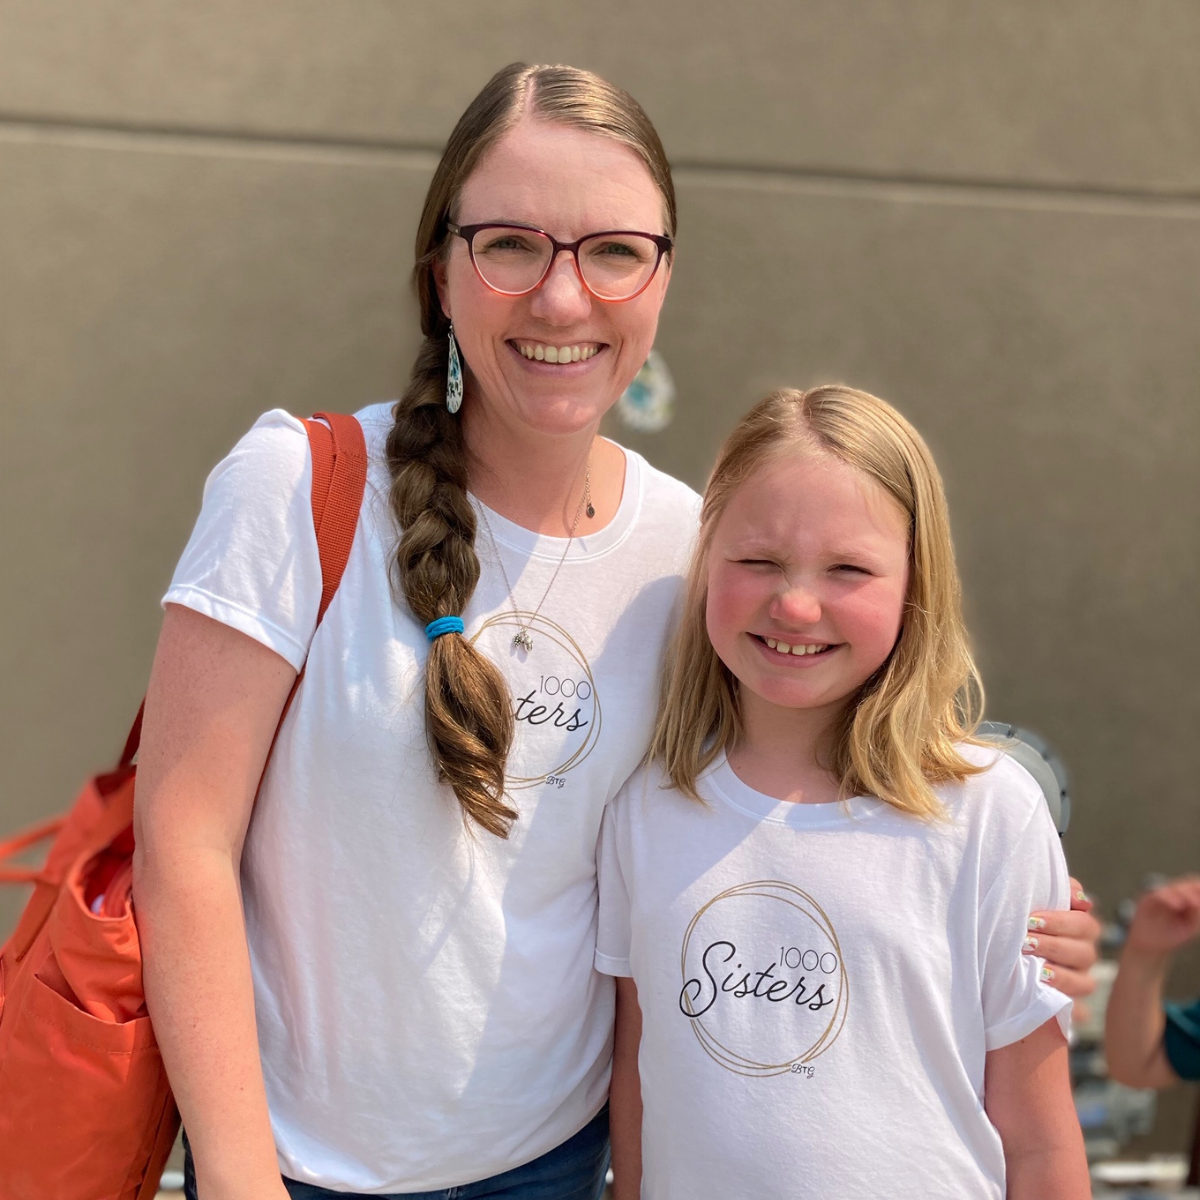 Ladies with 1,000 Sisters T-shirts